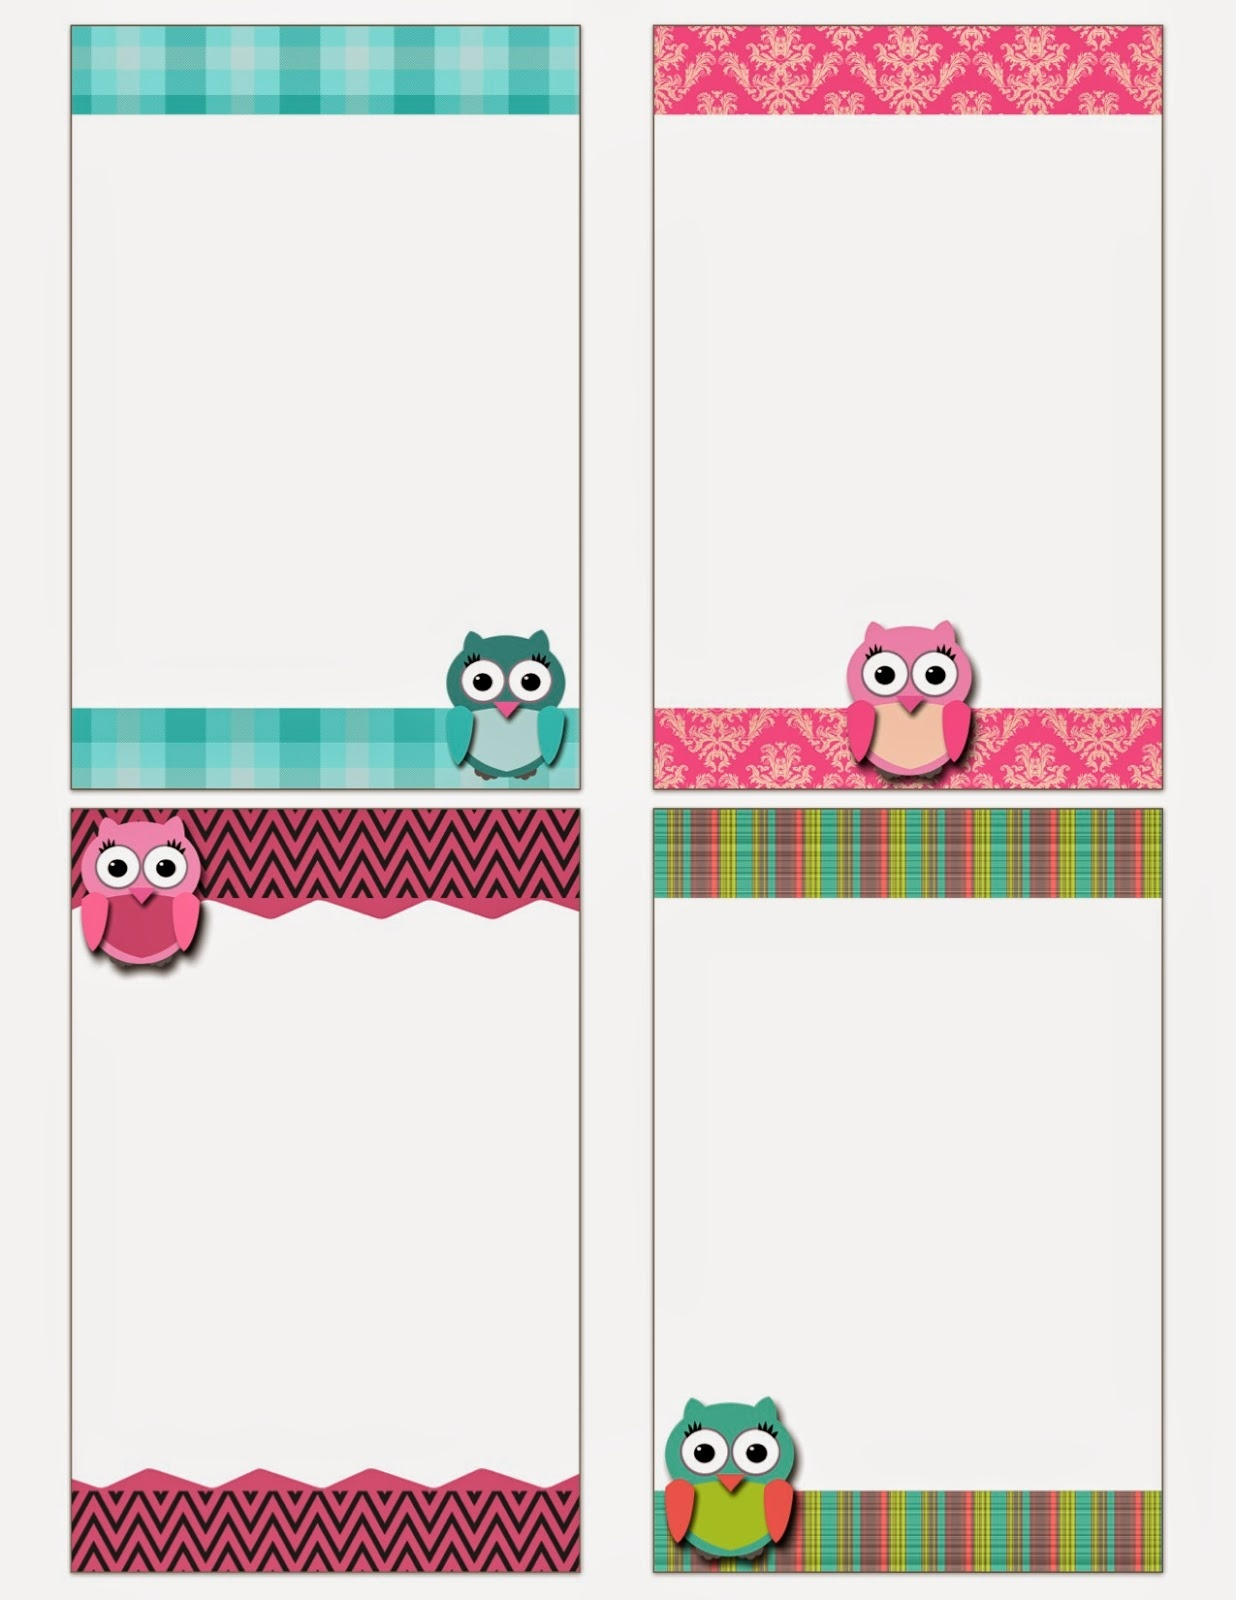 My Fashionable Designs: Free Printable: Owl Notecards - Free Printable Note Cards